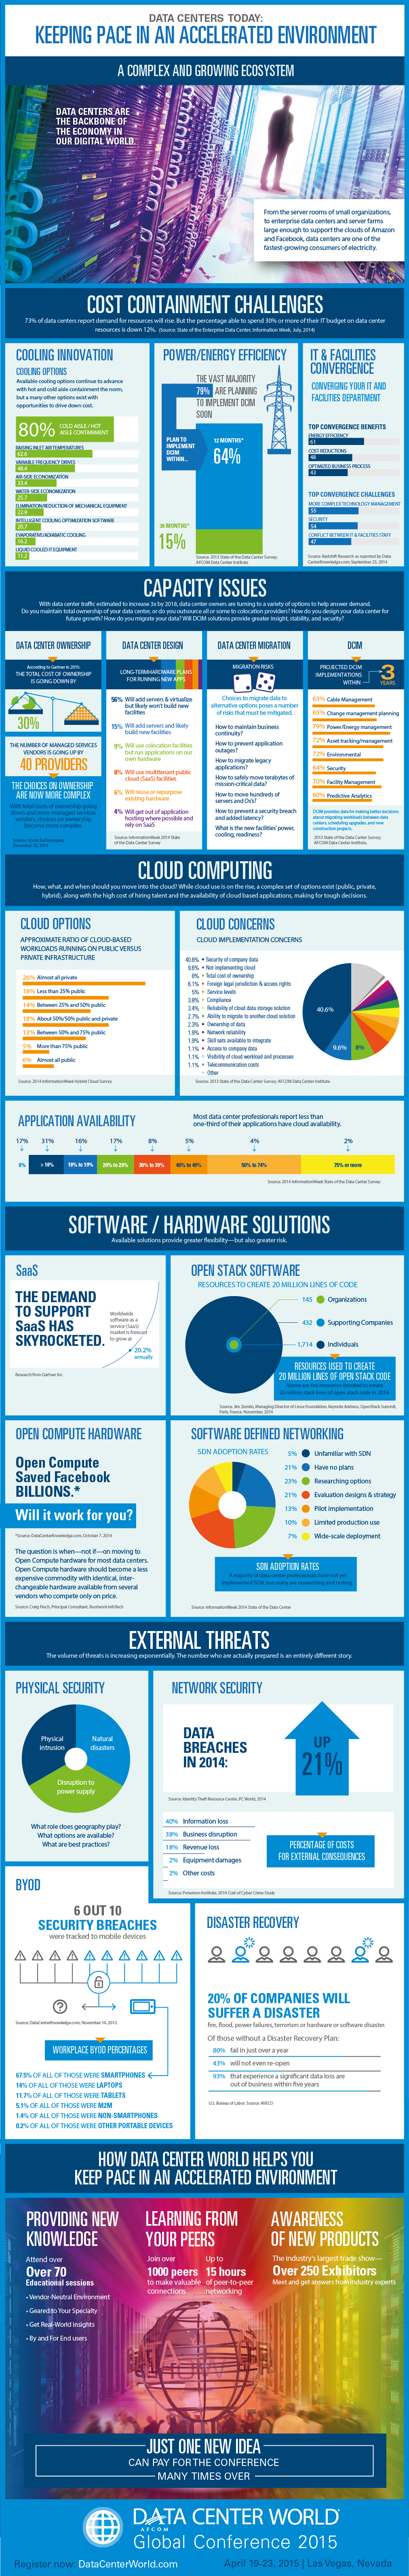 Infographic from AFCOM Data Center World.